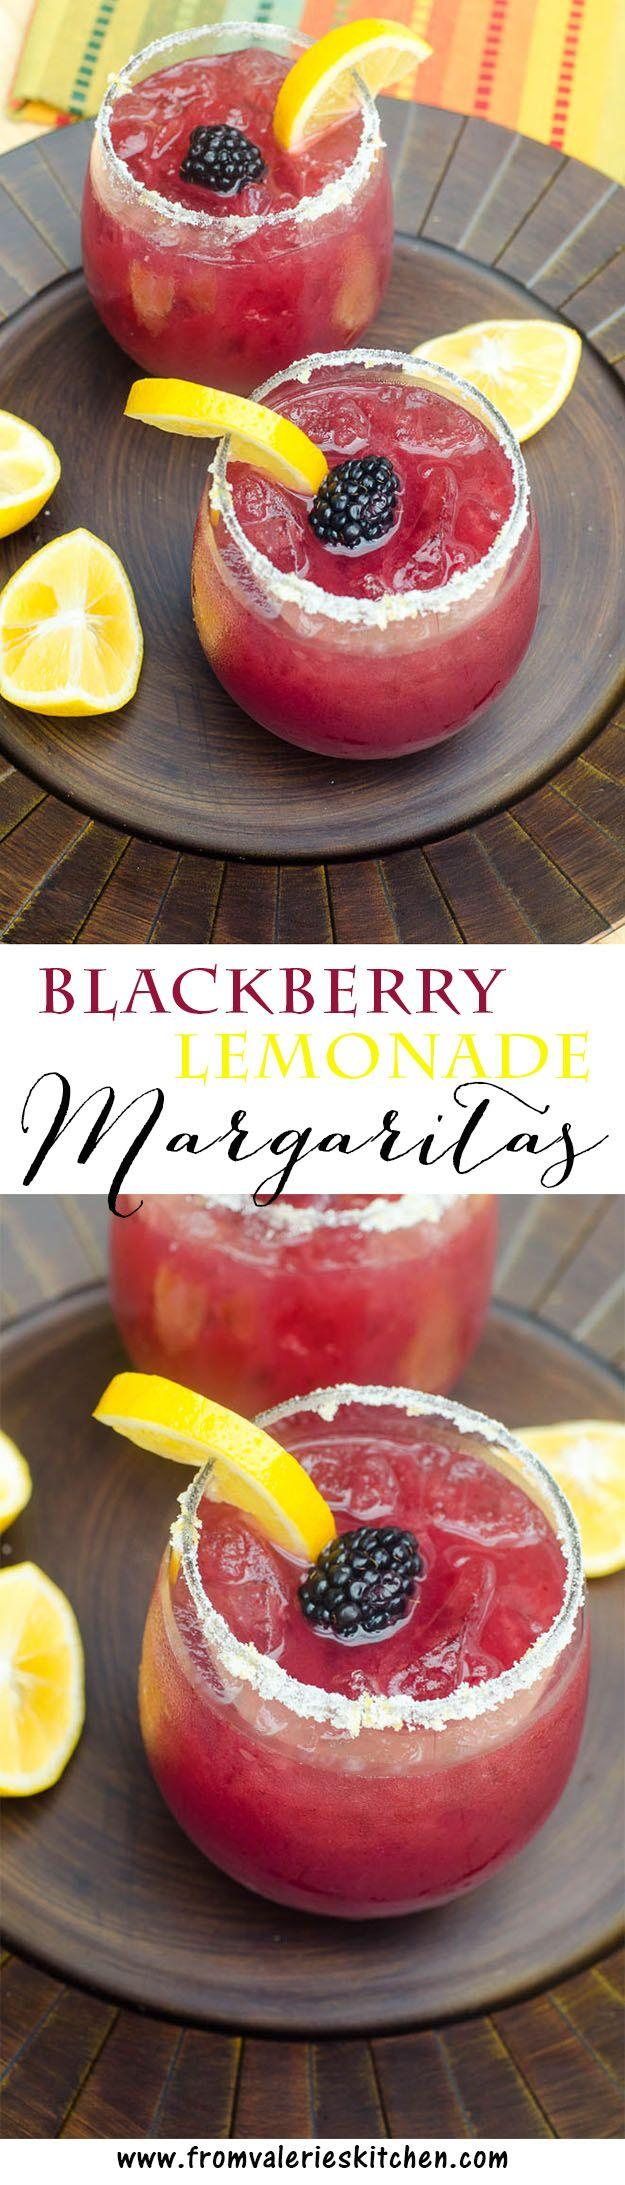 Hochzeit - Blackberry Lemonade Margaritas